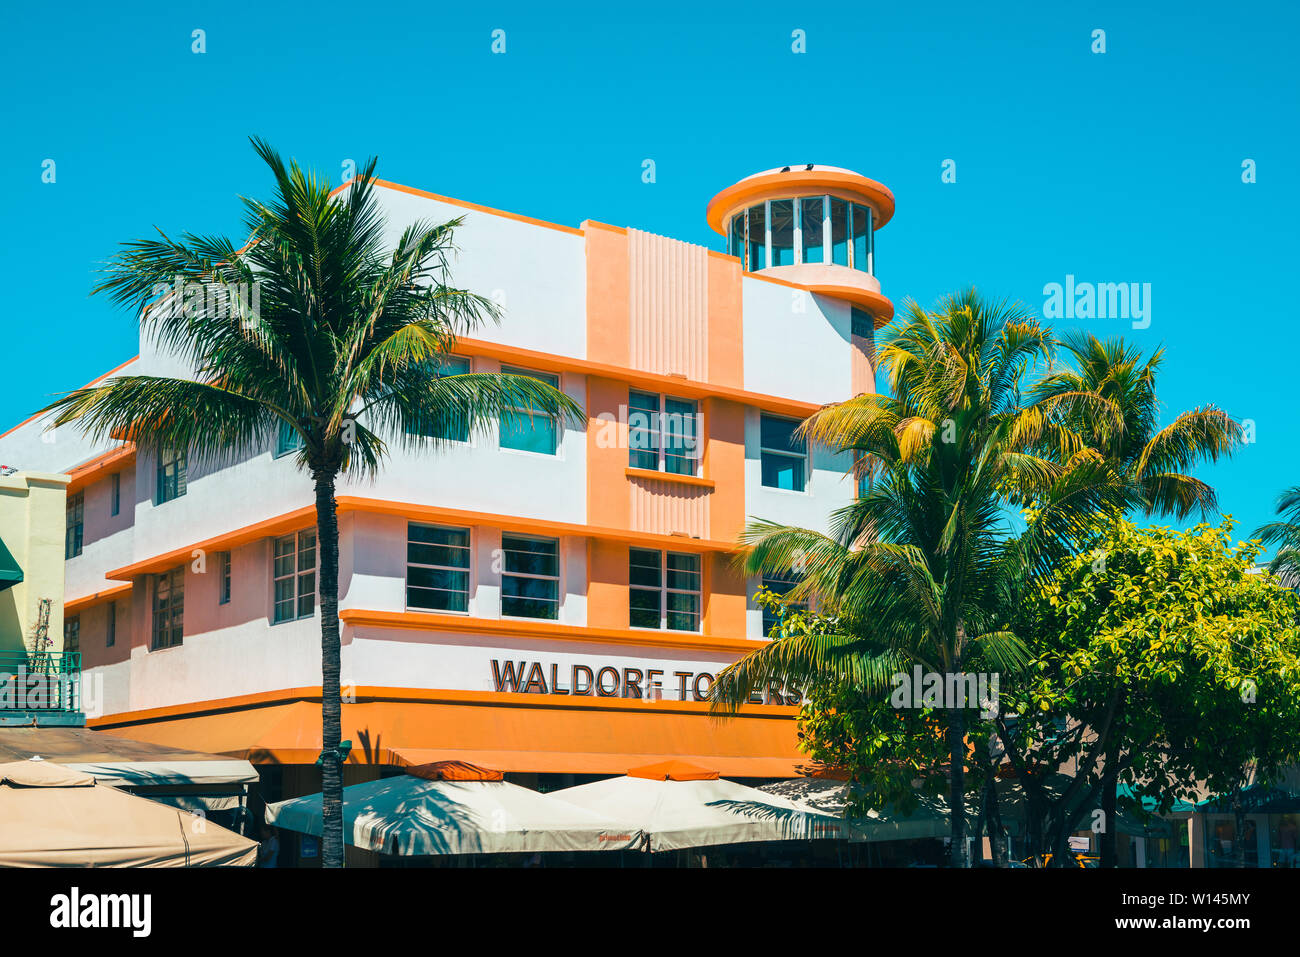 Detail of the Waldorf Towers Hotel in Miami South Beach Florida USA Stock Photo